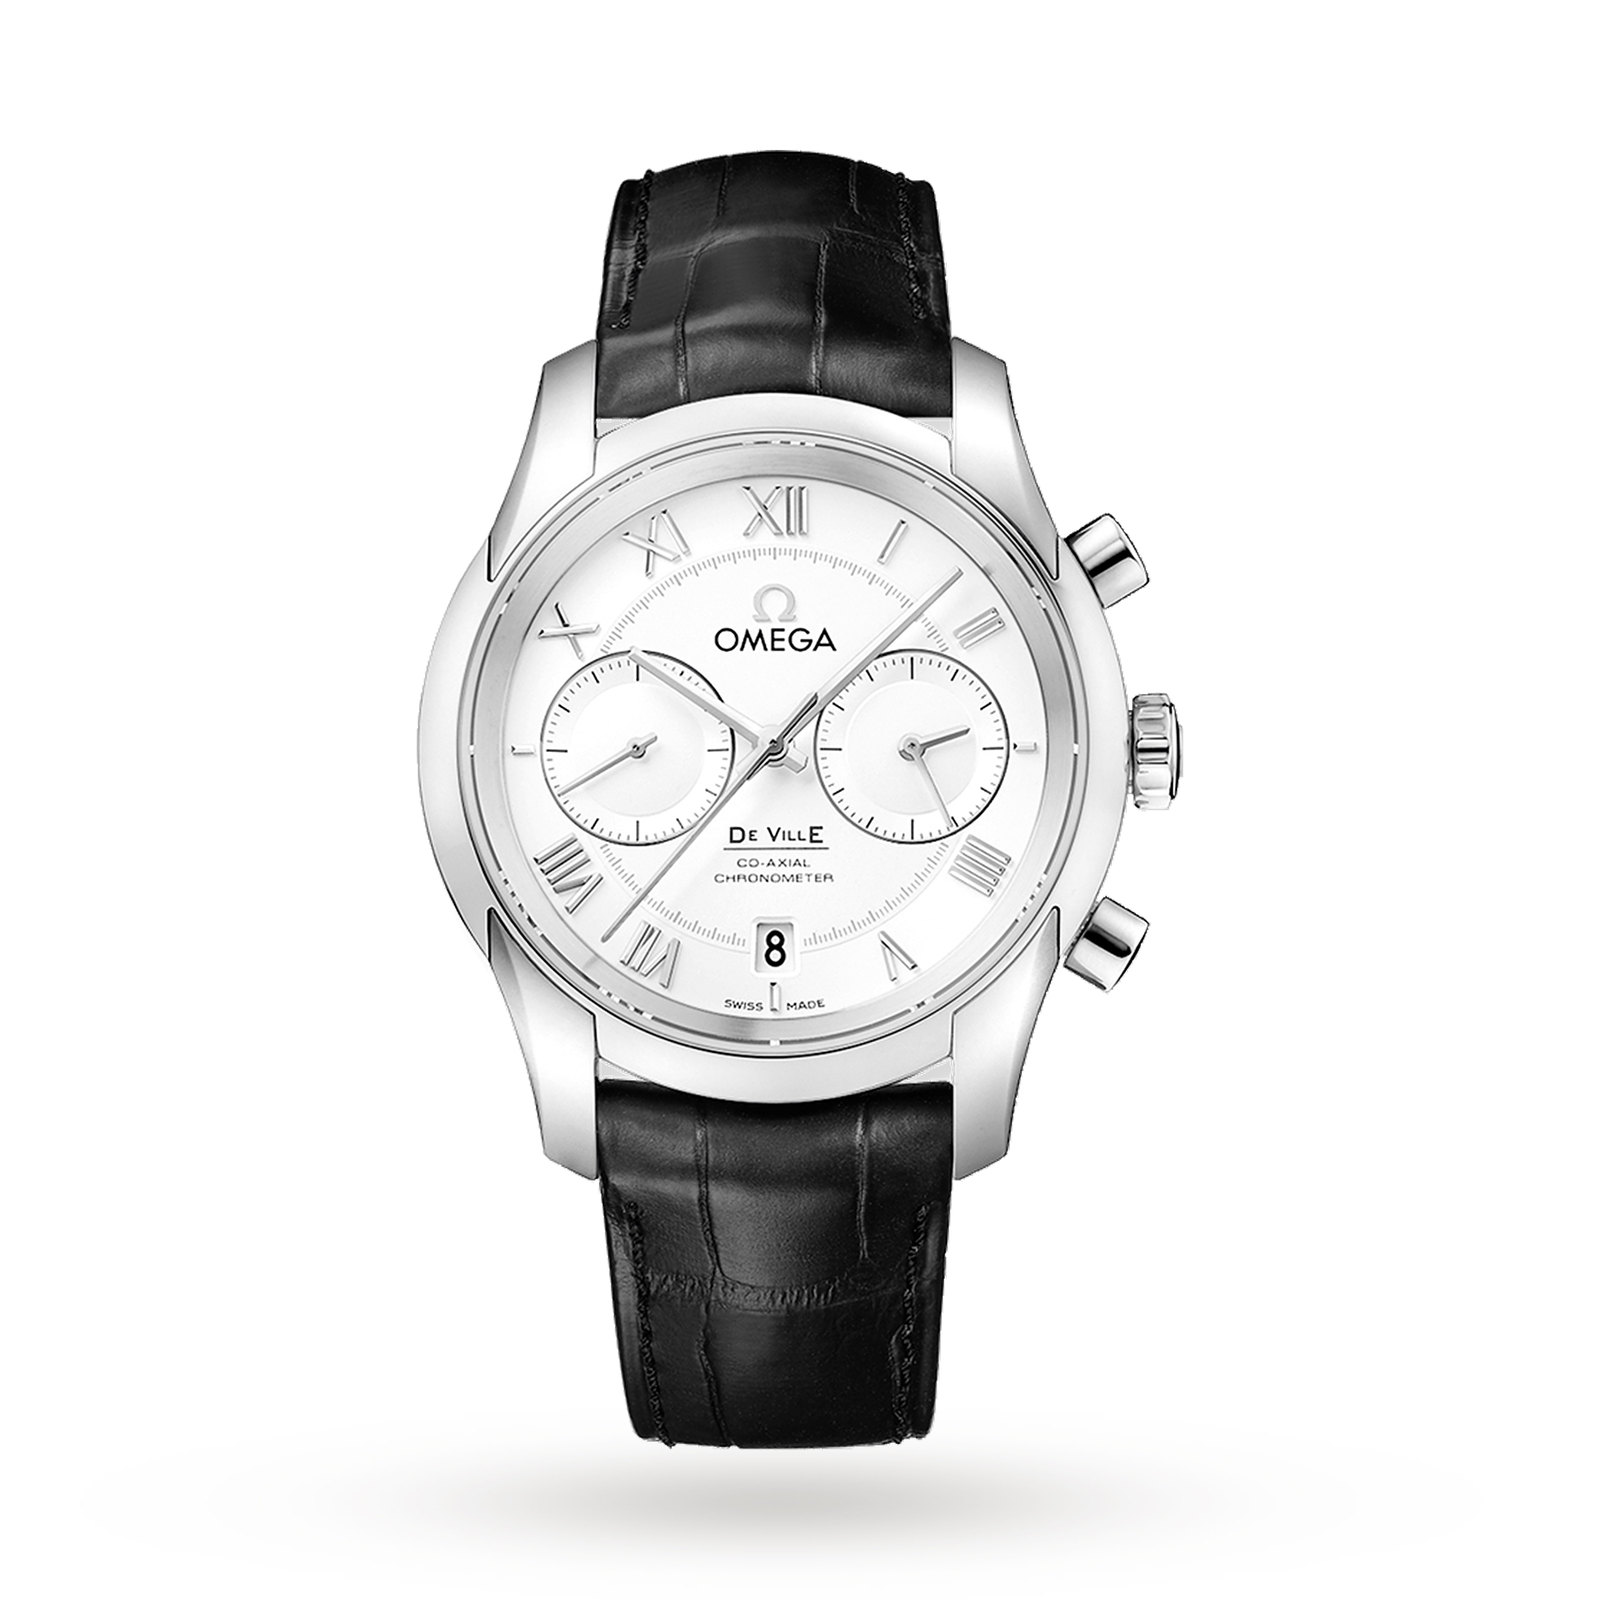 Omega De Ville Chronograph Gents Watch